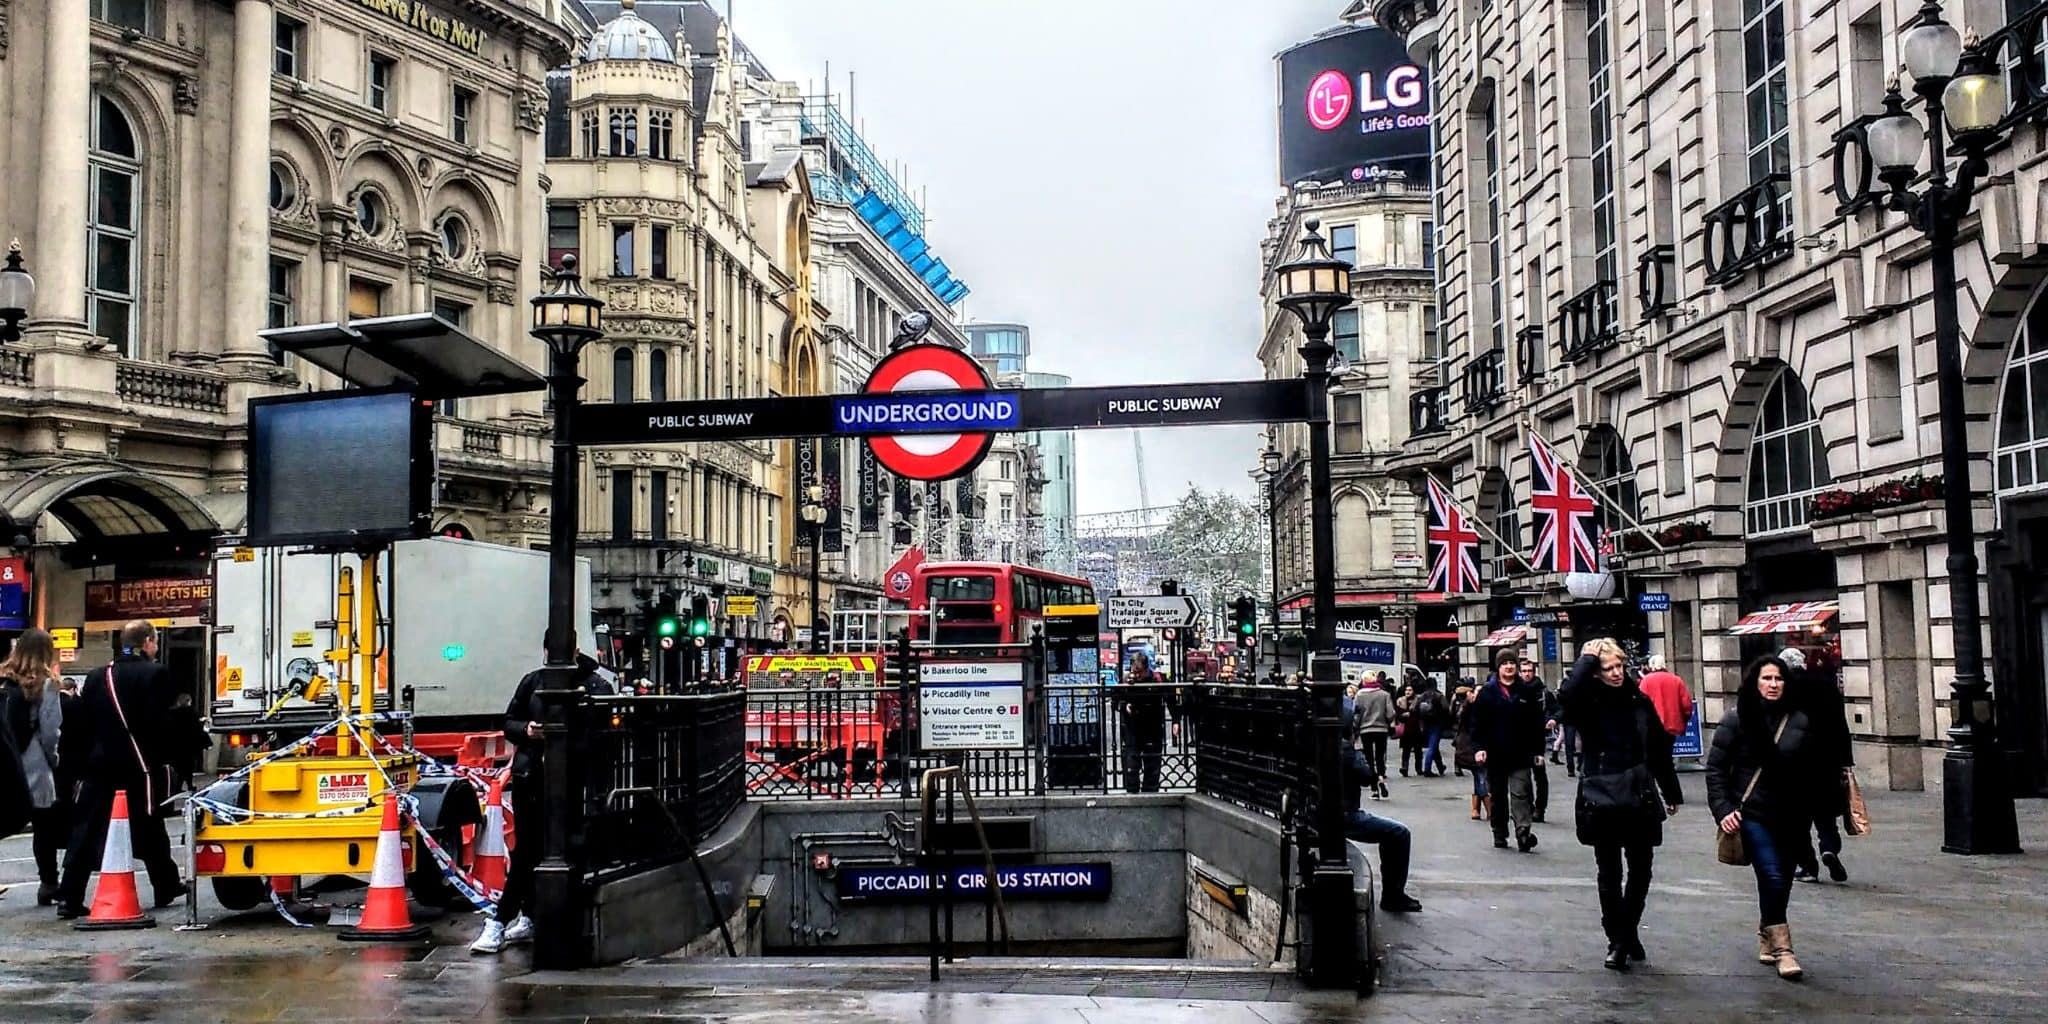 Piccadilly Circus tube station